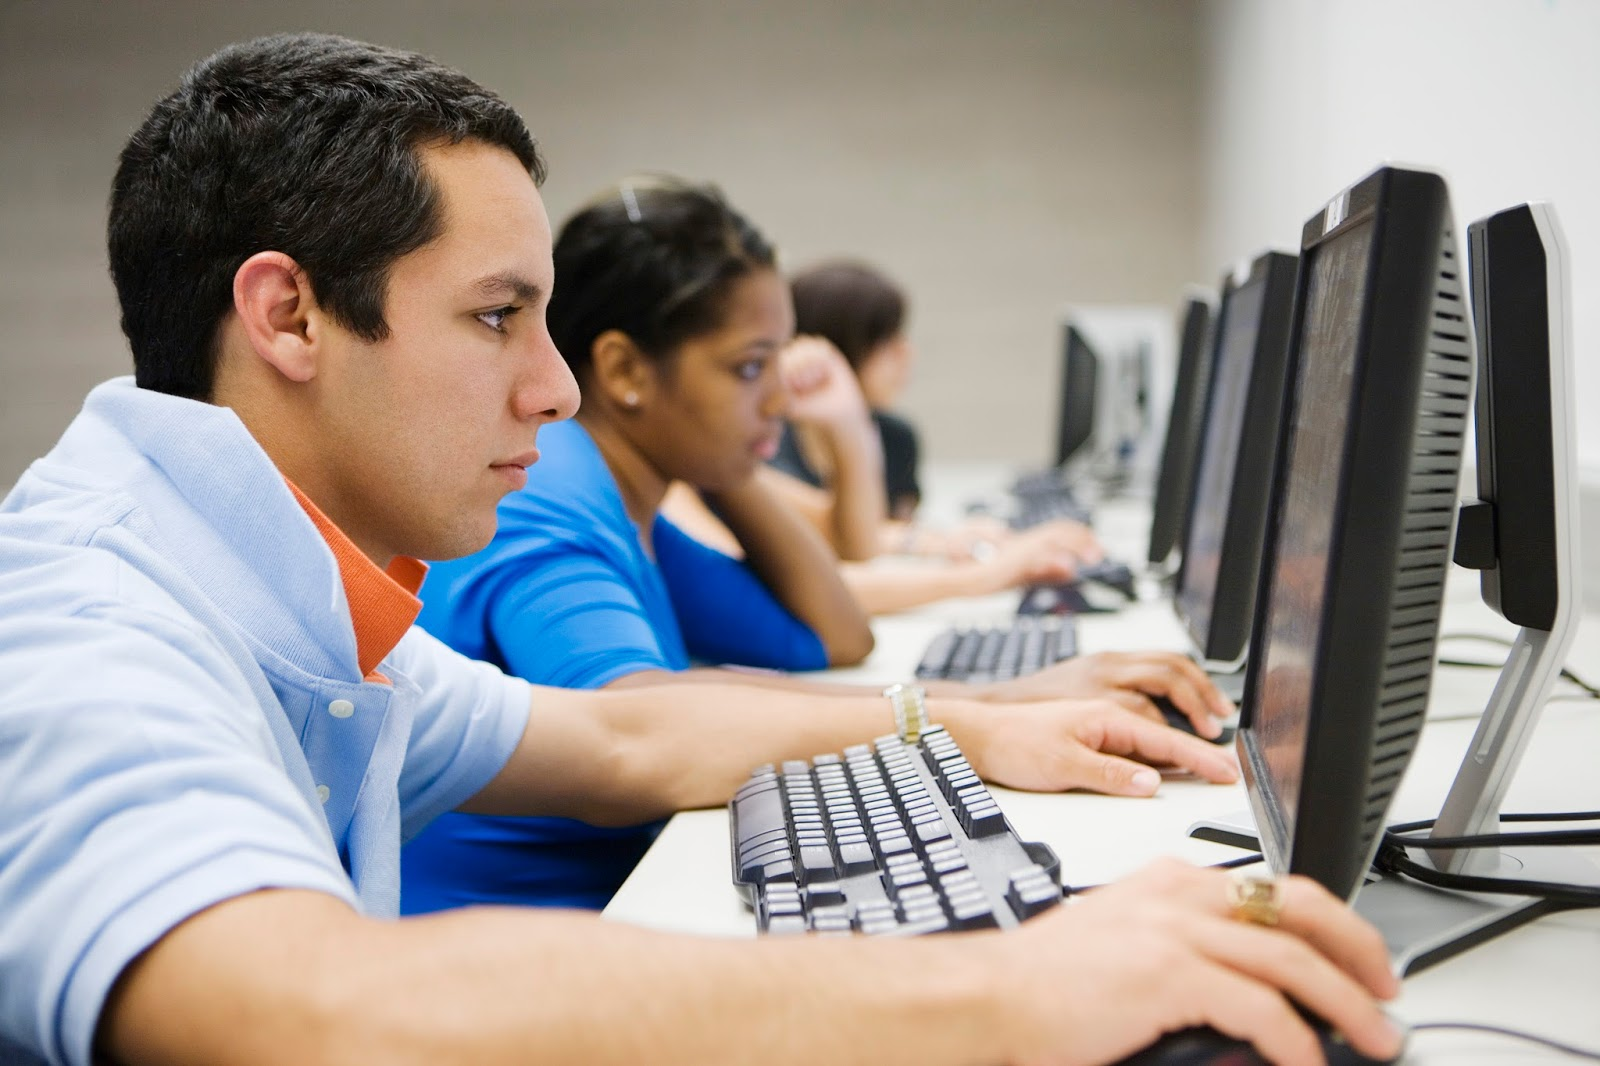 Young man in high school computer lab